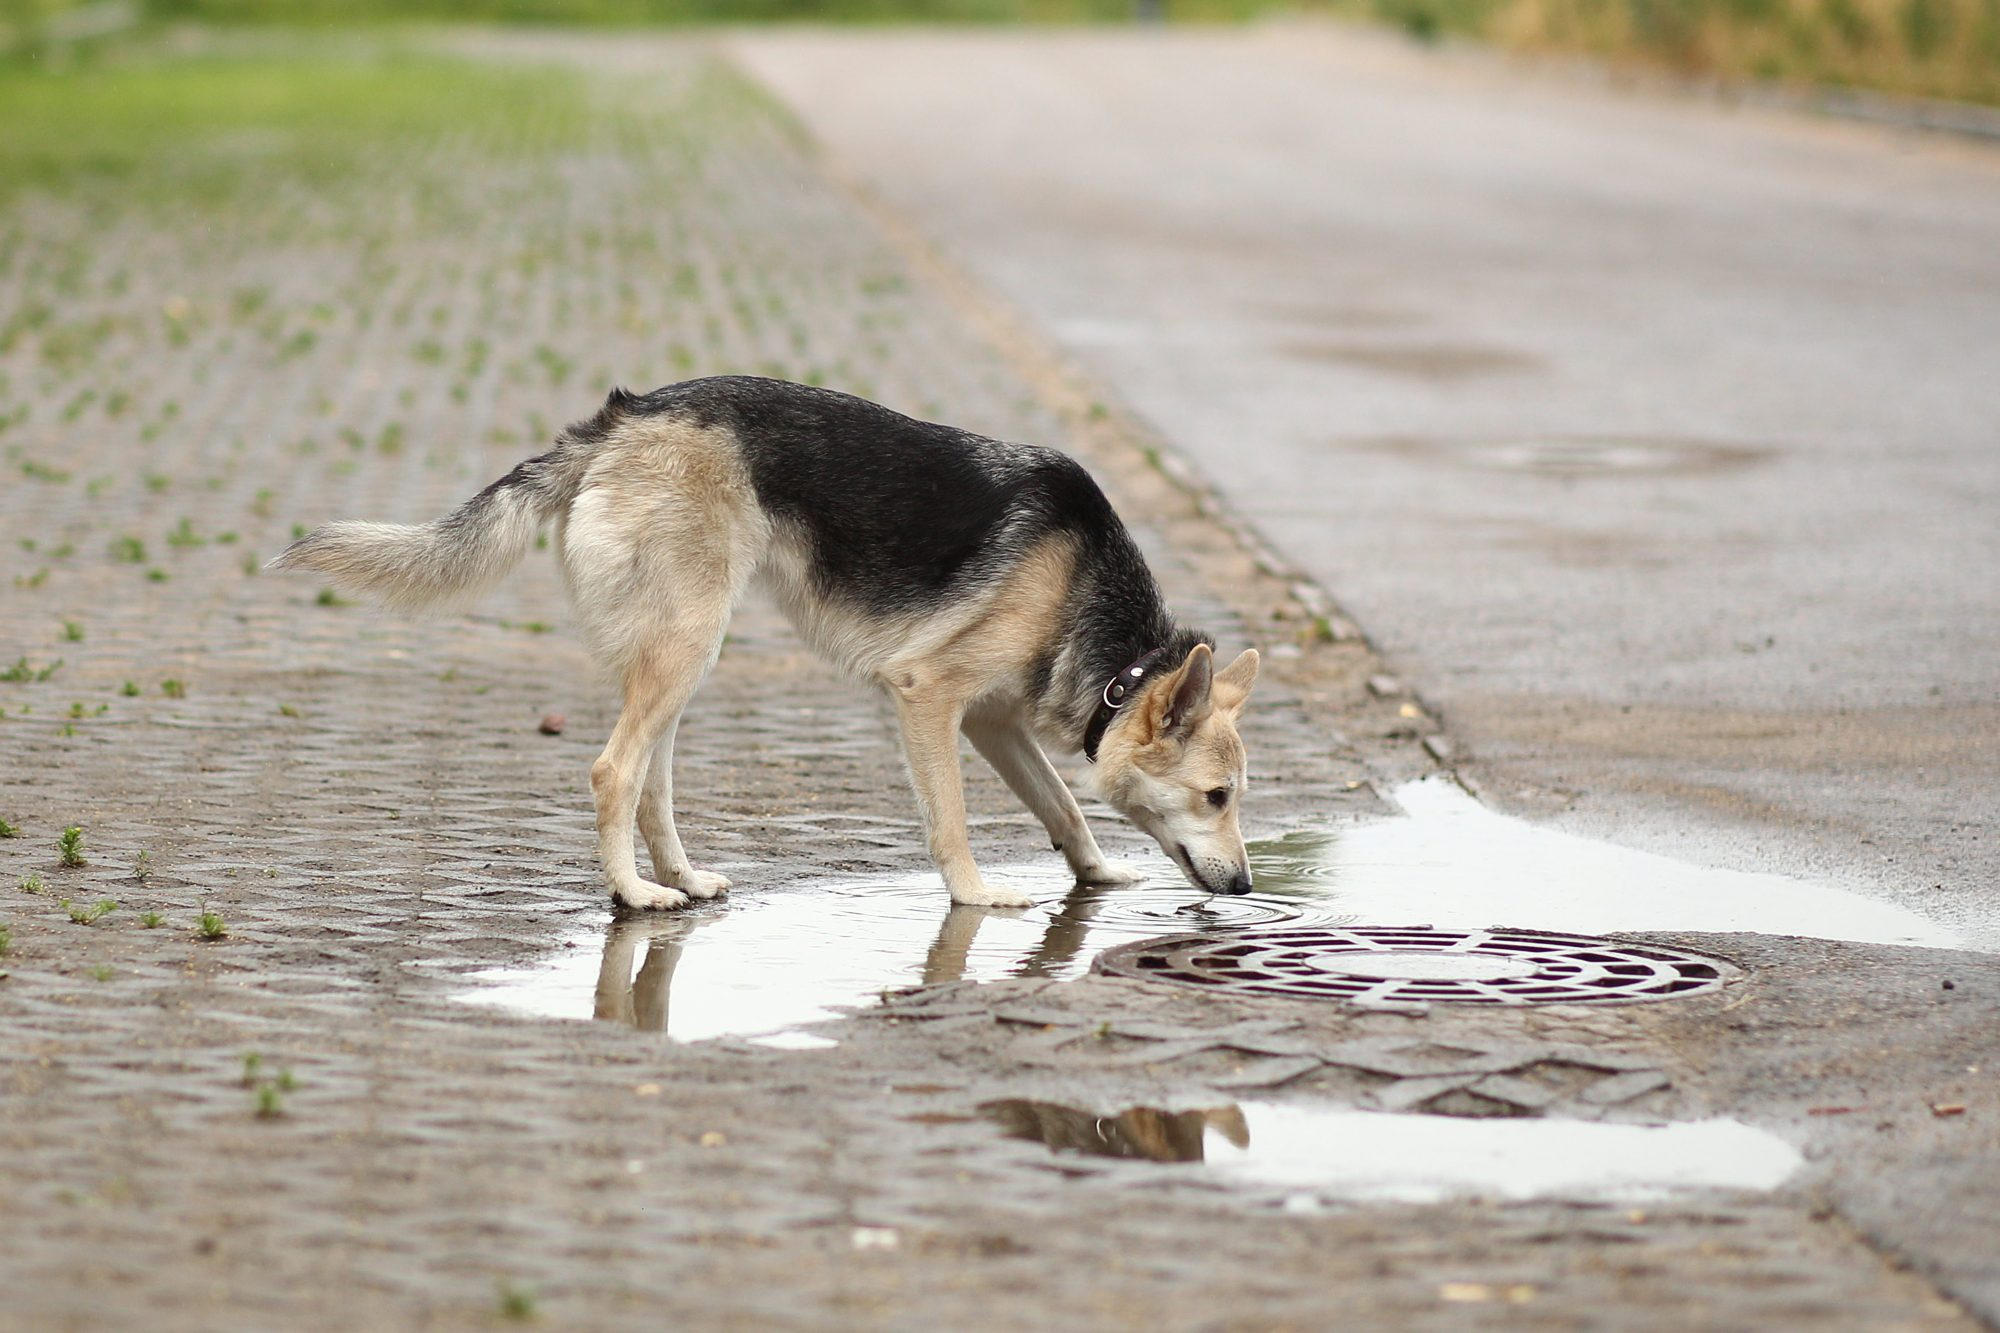 Dog drinking from puddle